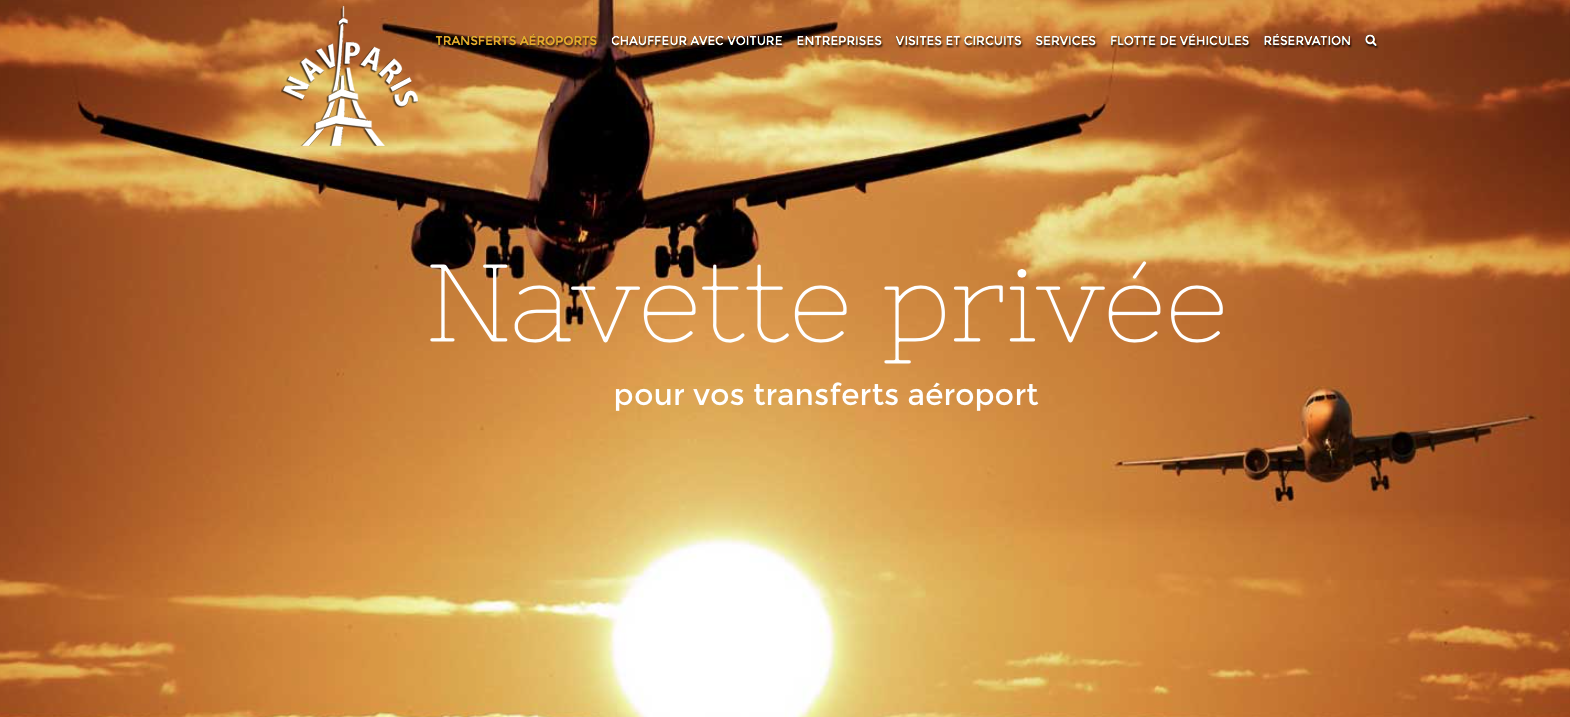 Atenao translates the Navparis website